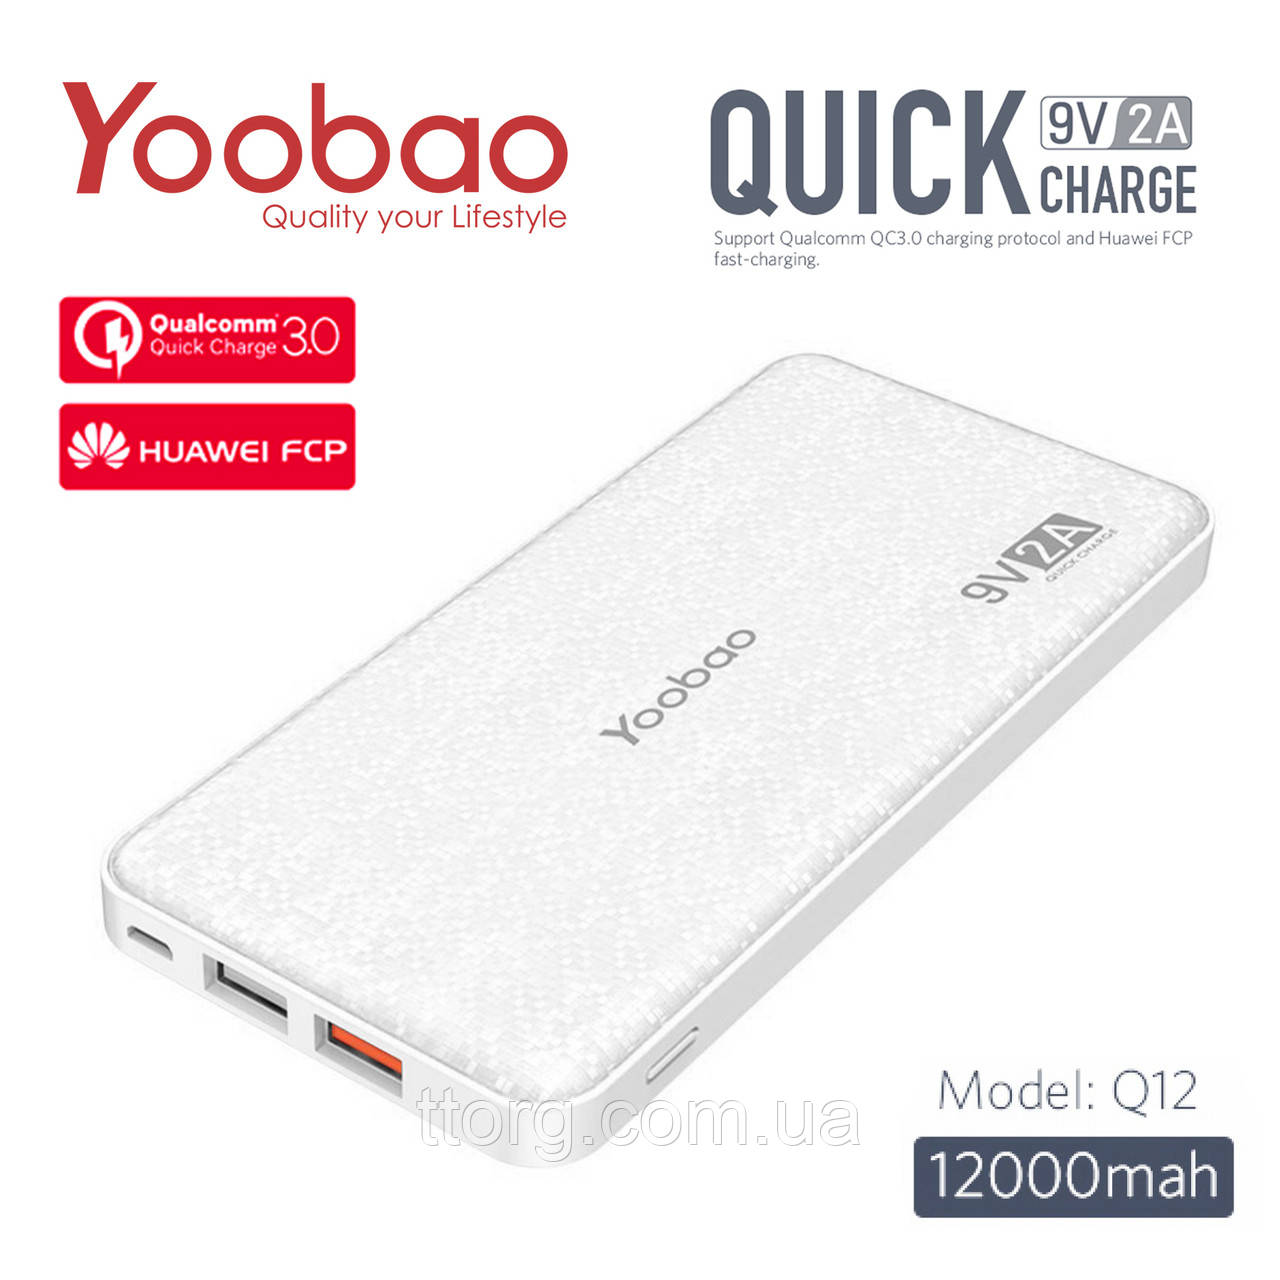 Power Bank Yoobao Q12 12000 mAh Quick Charge 3.0